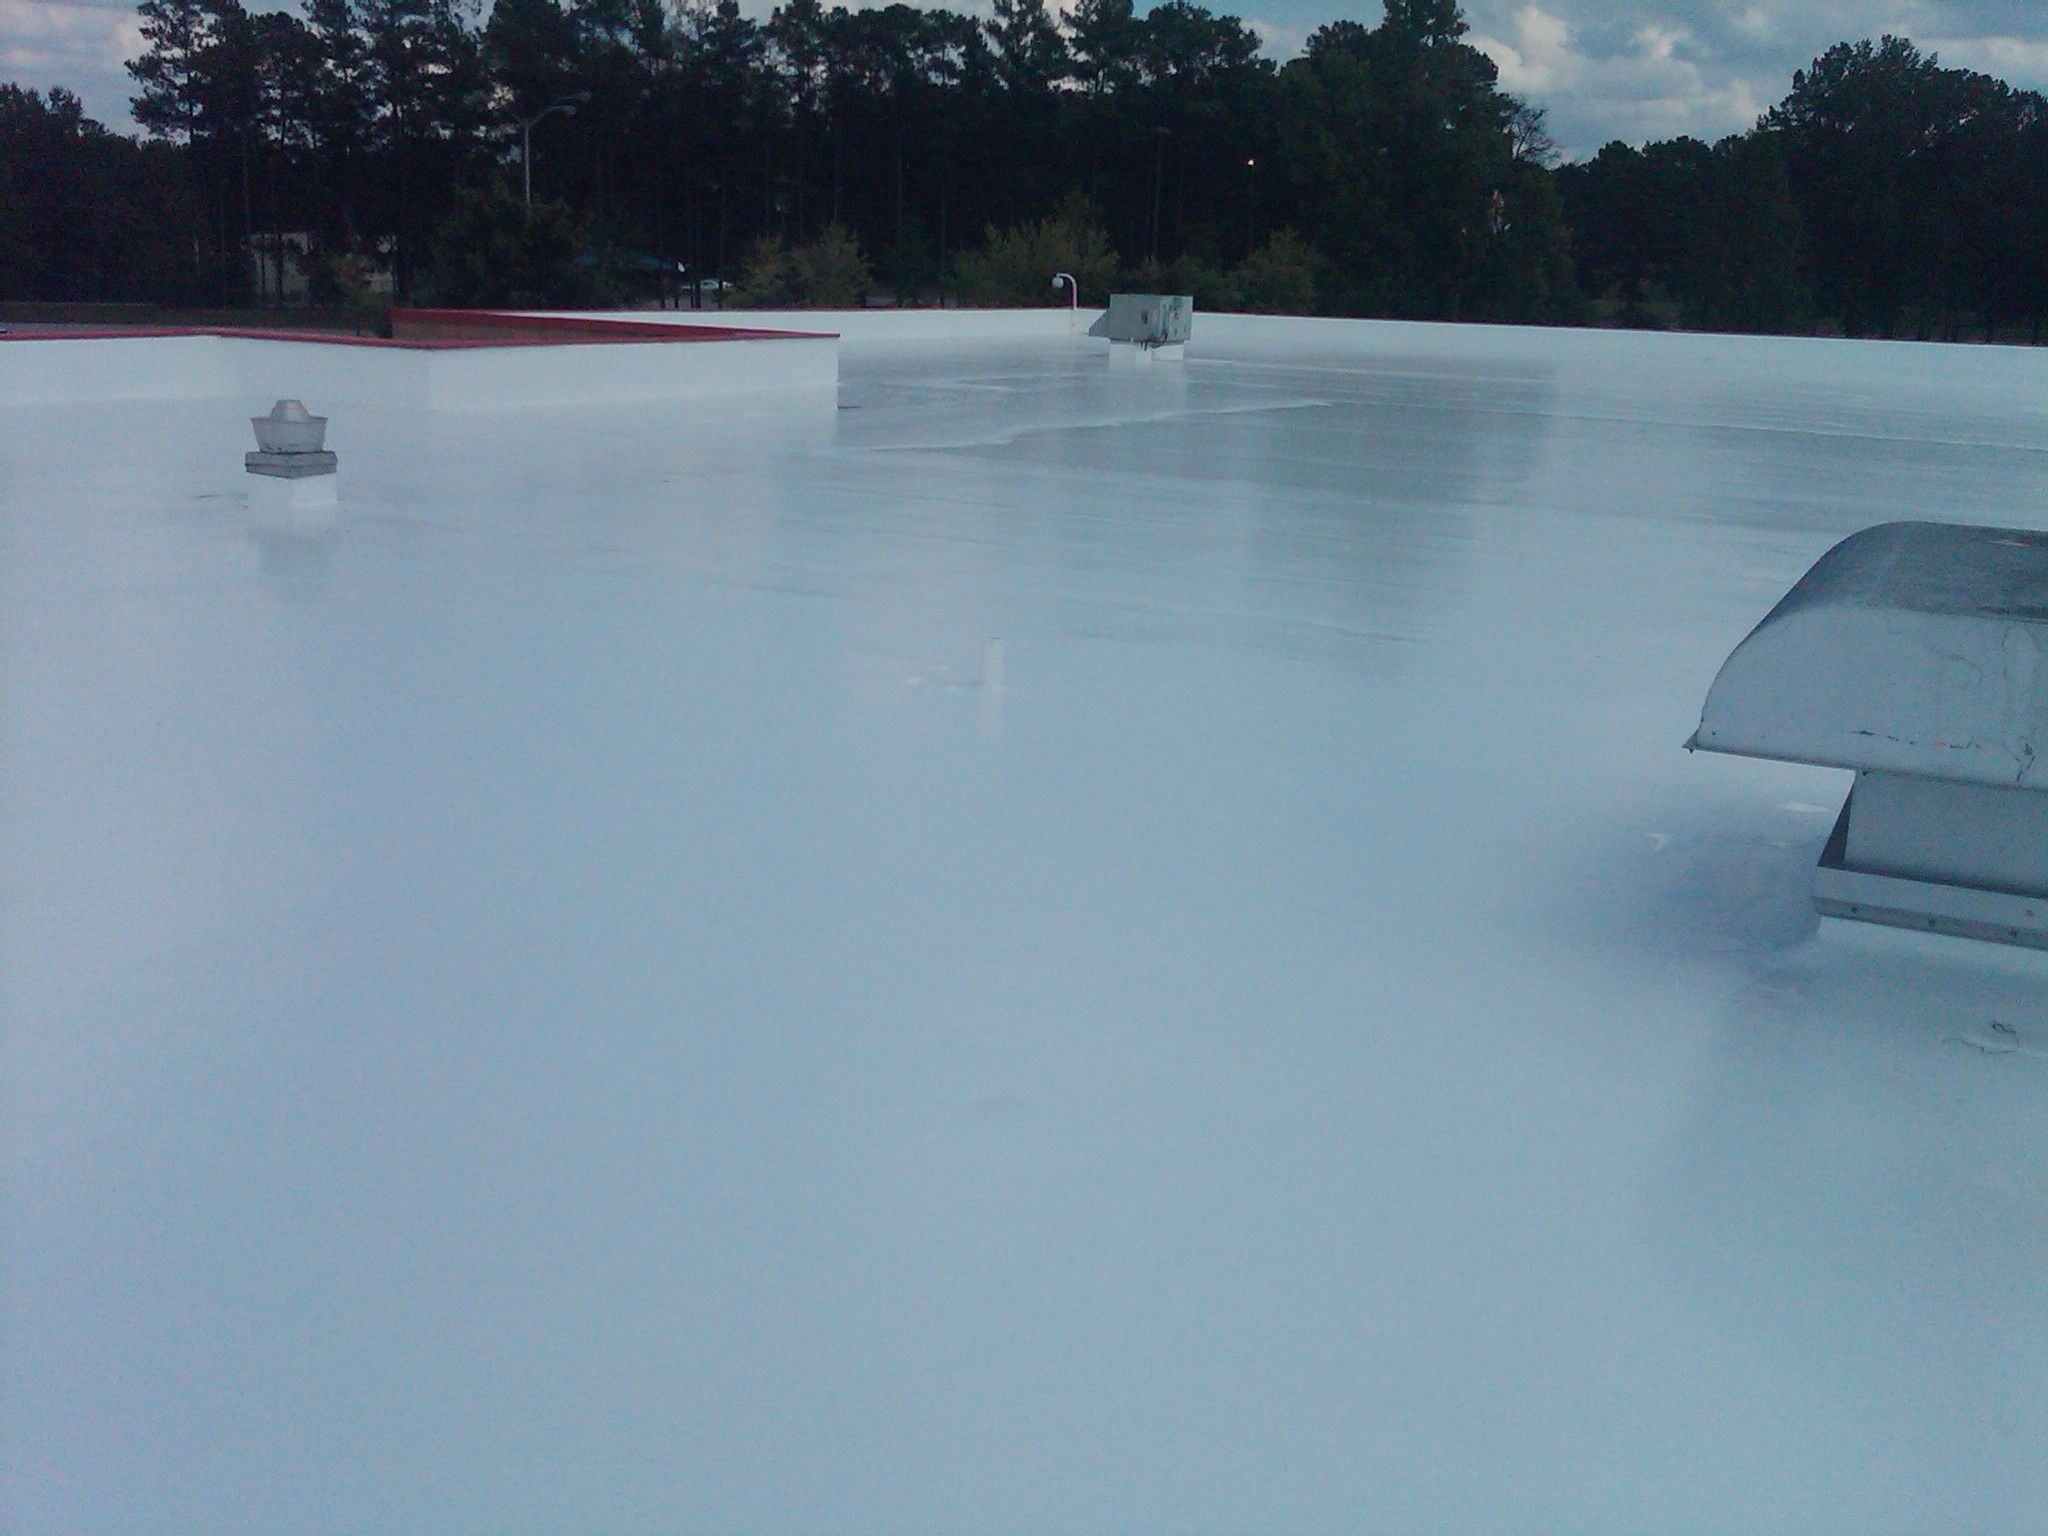 Best Roof Coating For Flat Roof In 2020 Flat Roof Sealant Roof Sealant Roof Coating